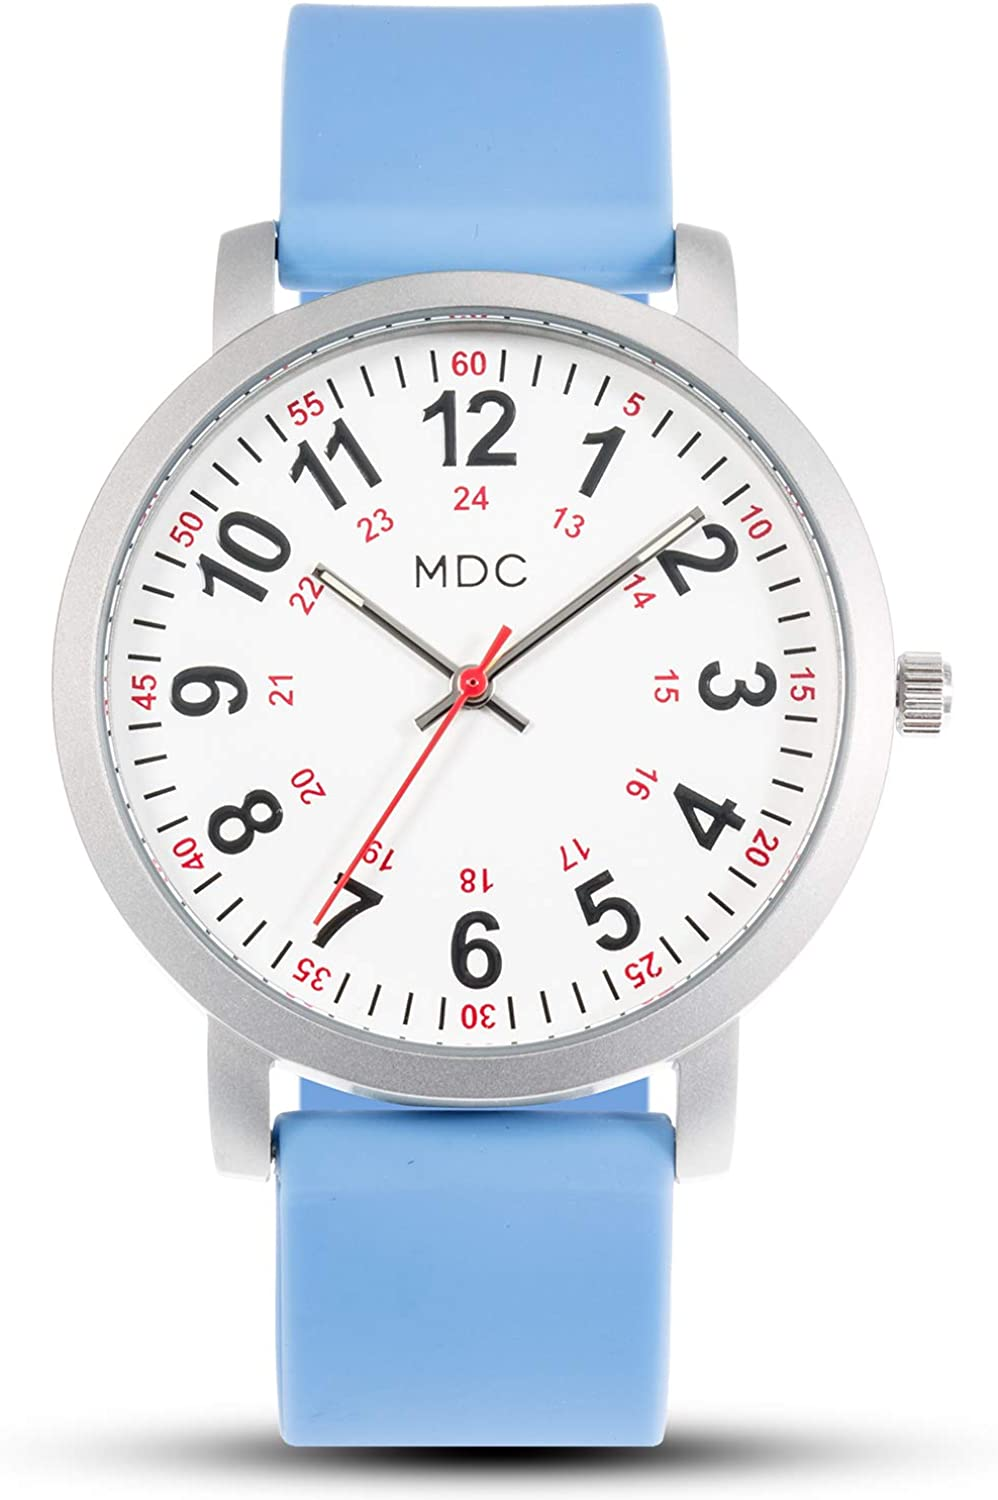 MDC Nurse Watch for Medical Students,Doctors,Women with Second Hand and 24 Hour, Waterproof, Slicone Strap